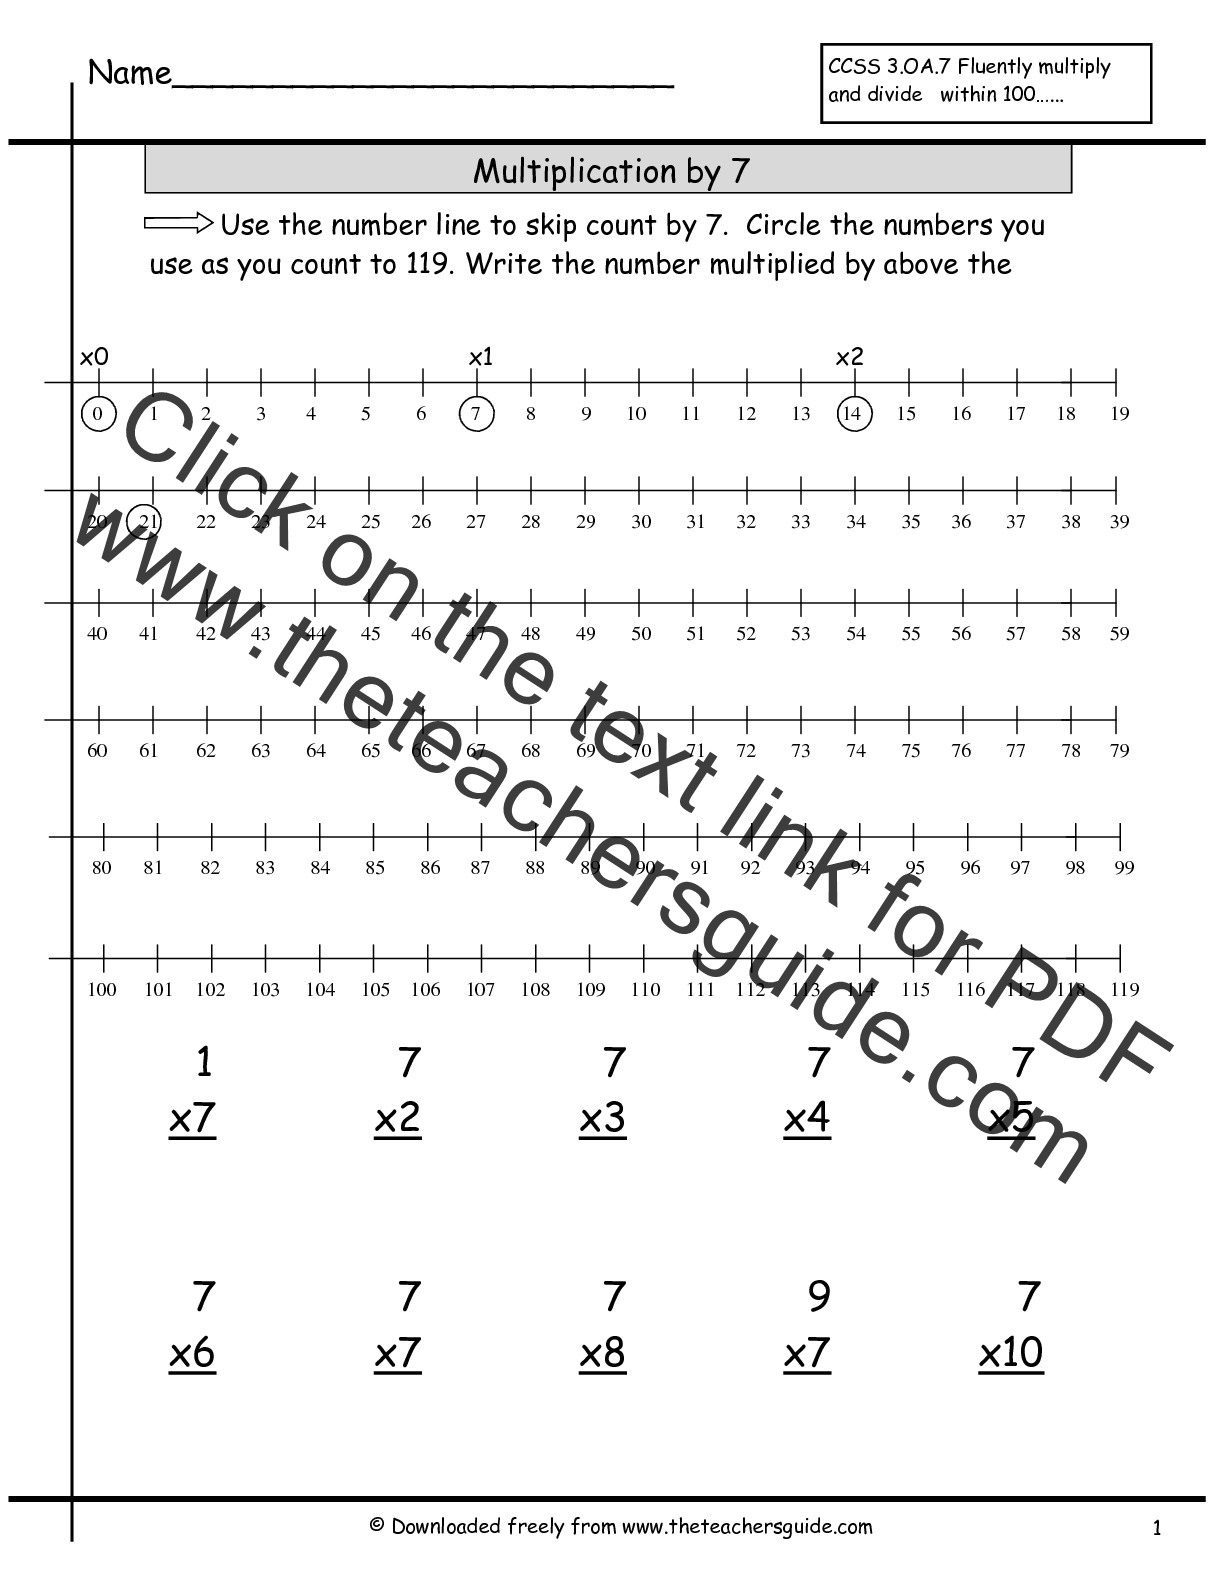 Multiplication Facts Worksheets from The Teachers Guide – Multiplication Doubles Worksheet